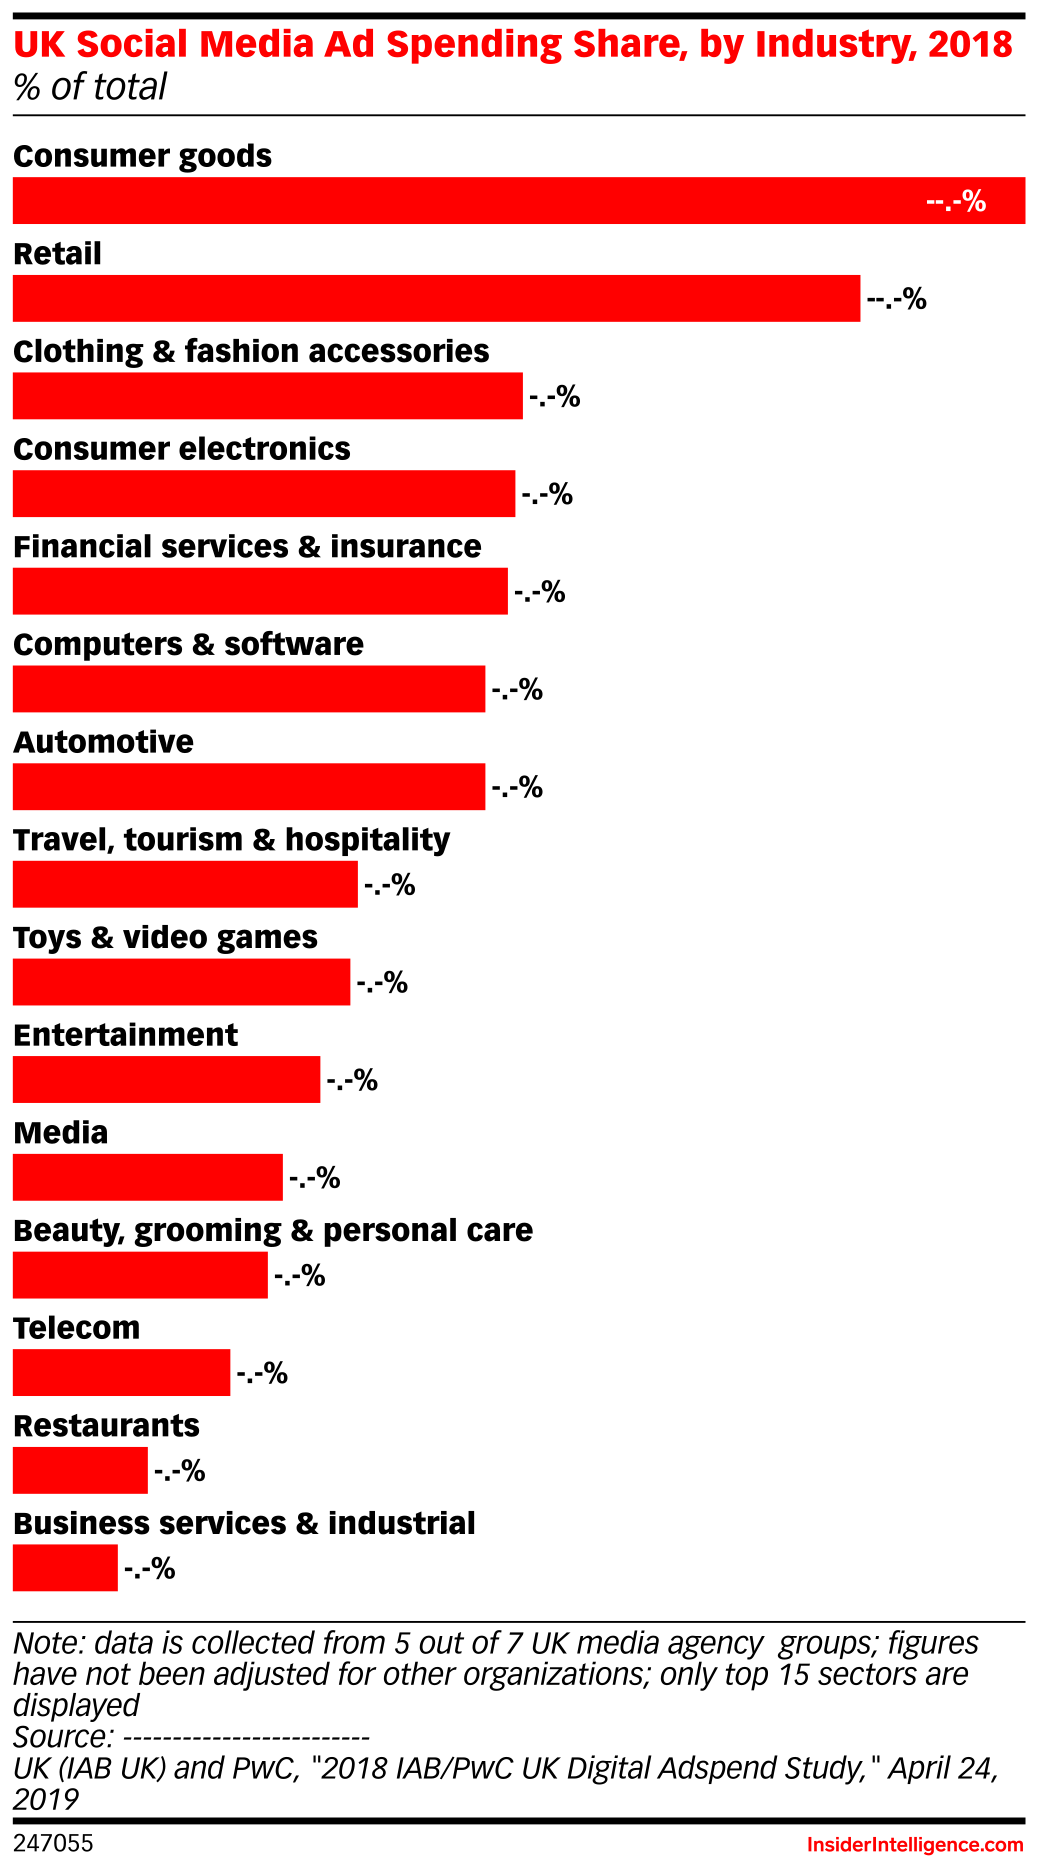 UK Social Media Ad Spending Share, by Industry, 2018 (% of total)